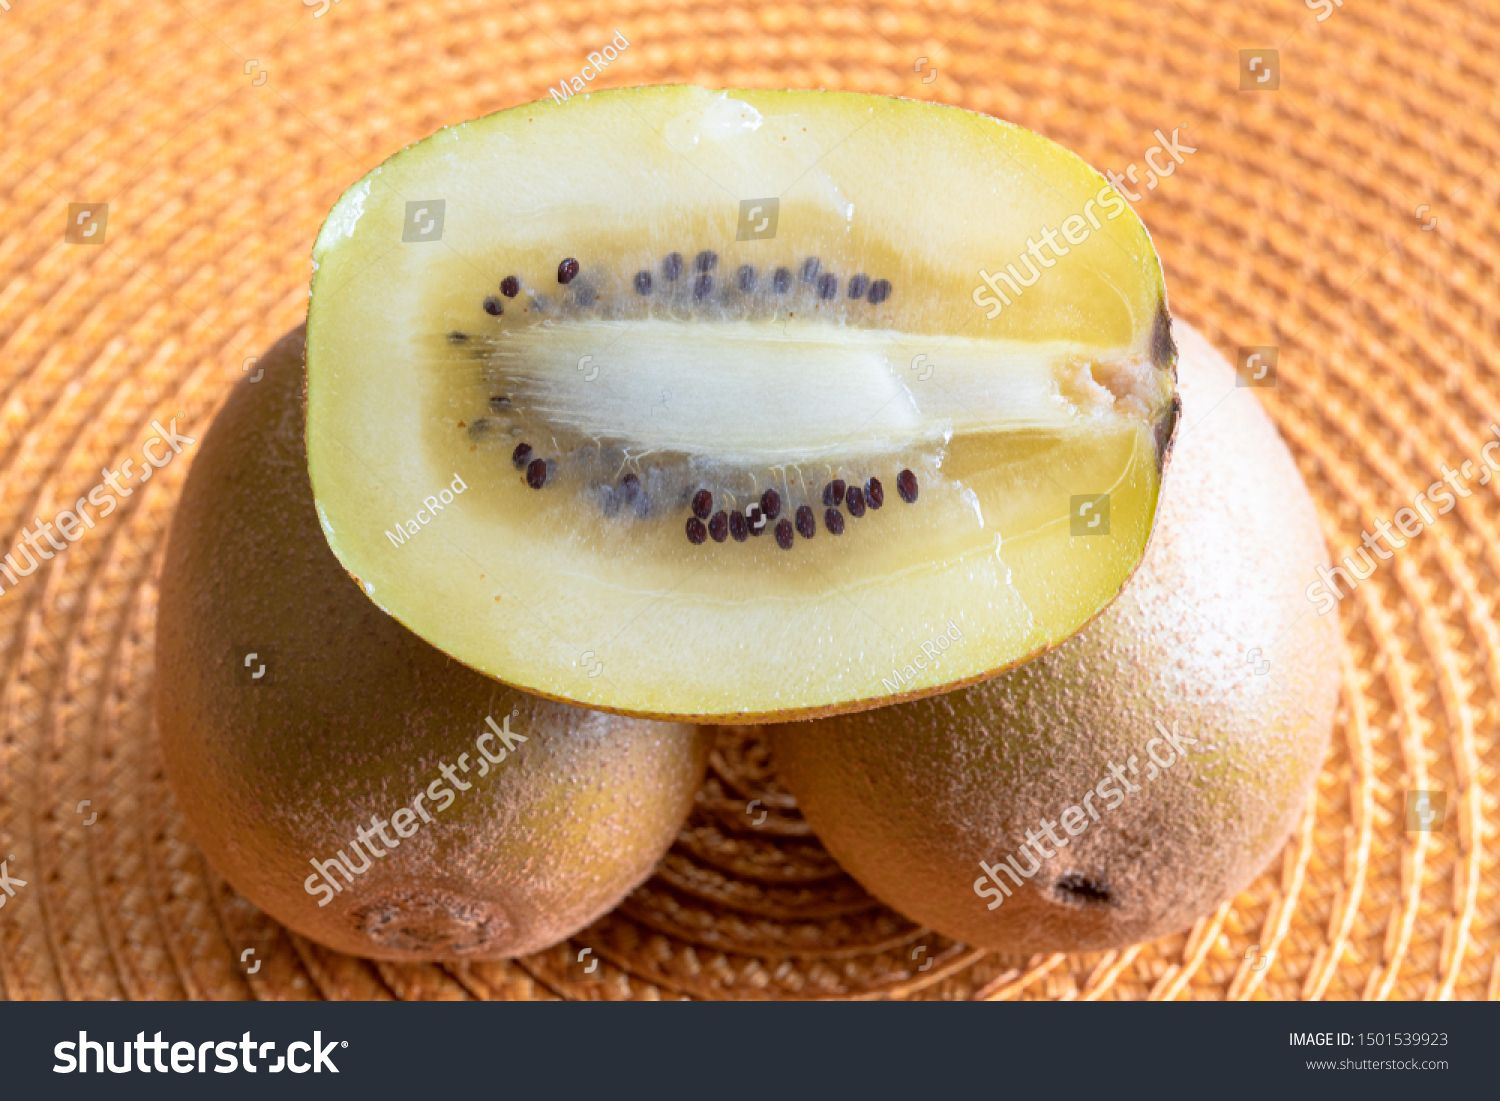 Cross section of a golden kiwi fruit. The image shows the seeds and flesh of the fresh natural food. #Sponsored , #affiliate, #kiwi#fruit#image#Cross